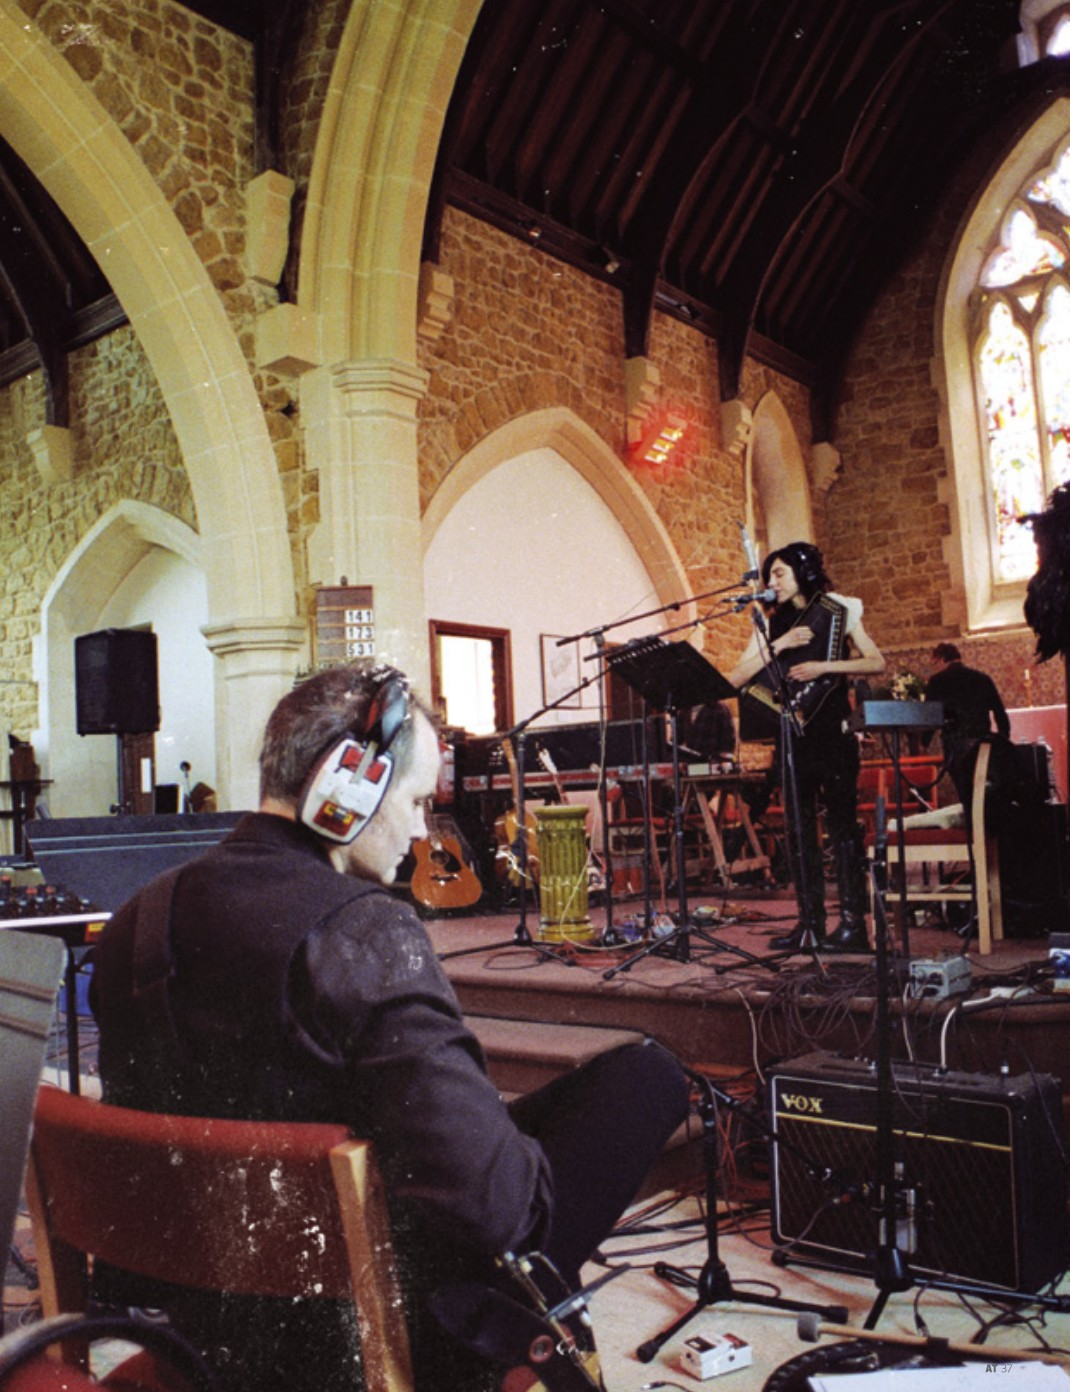 Part two of article, showing John Parish and PJ Harvey at the Dorset church